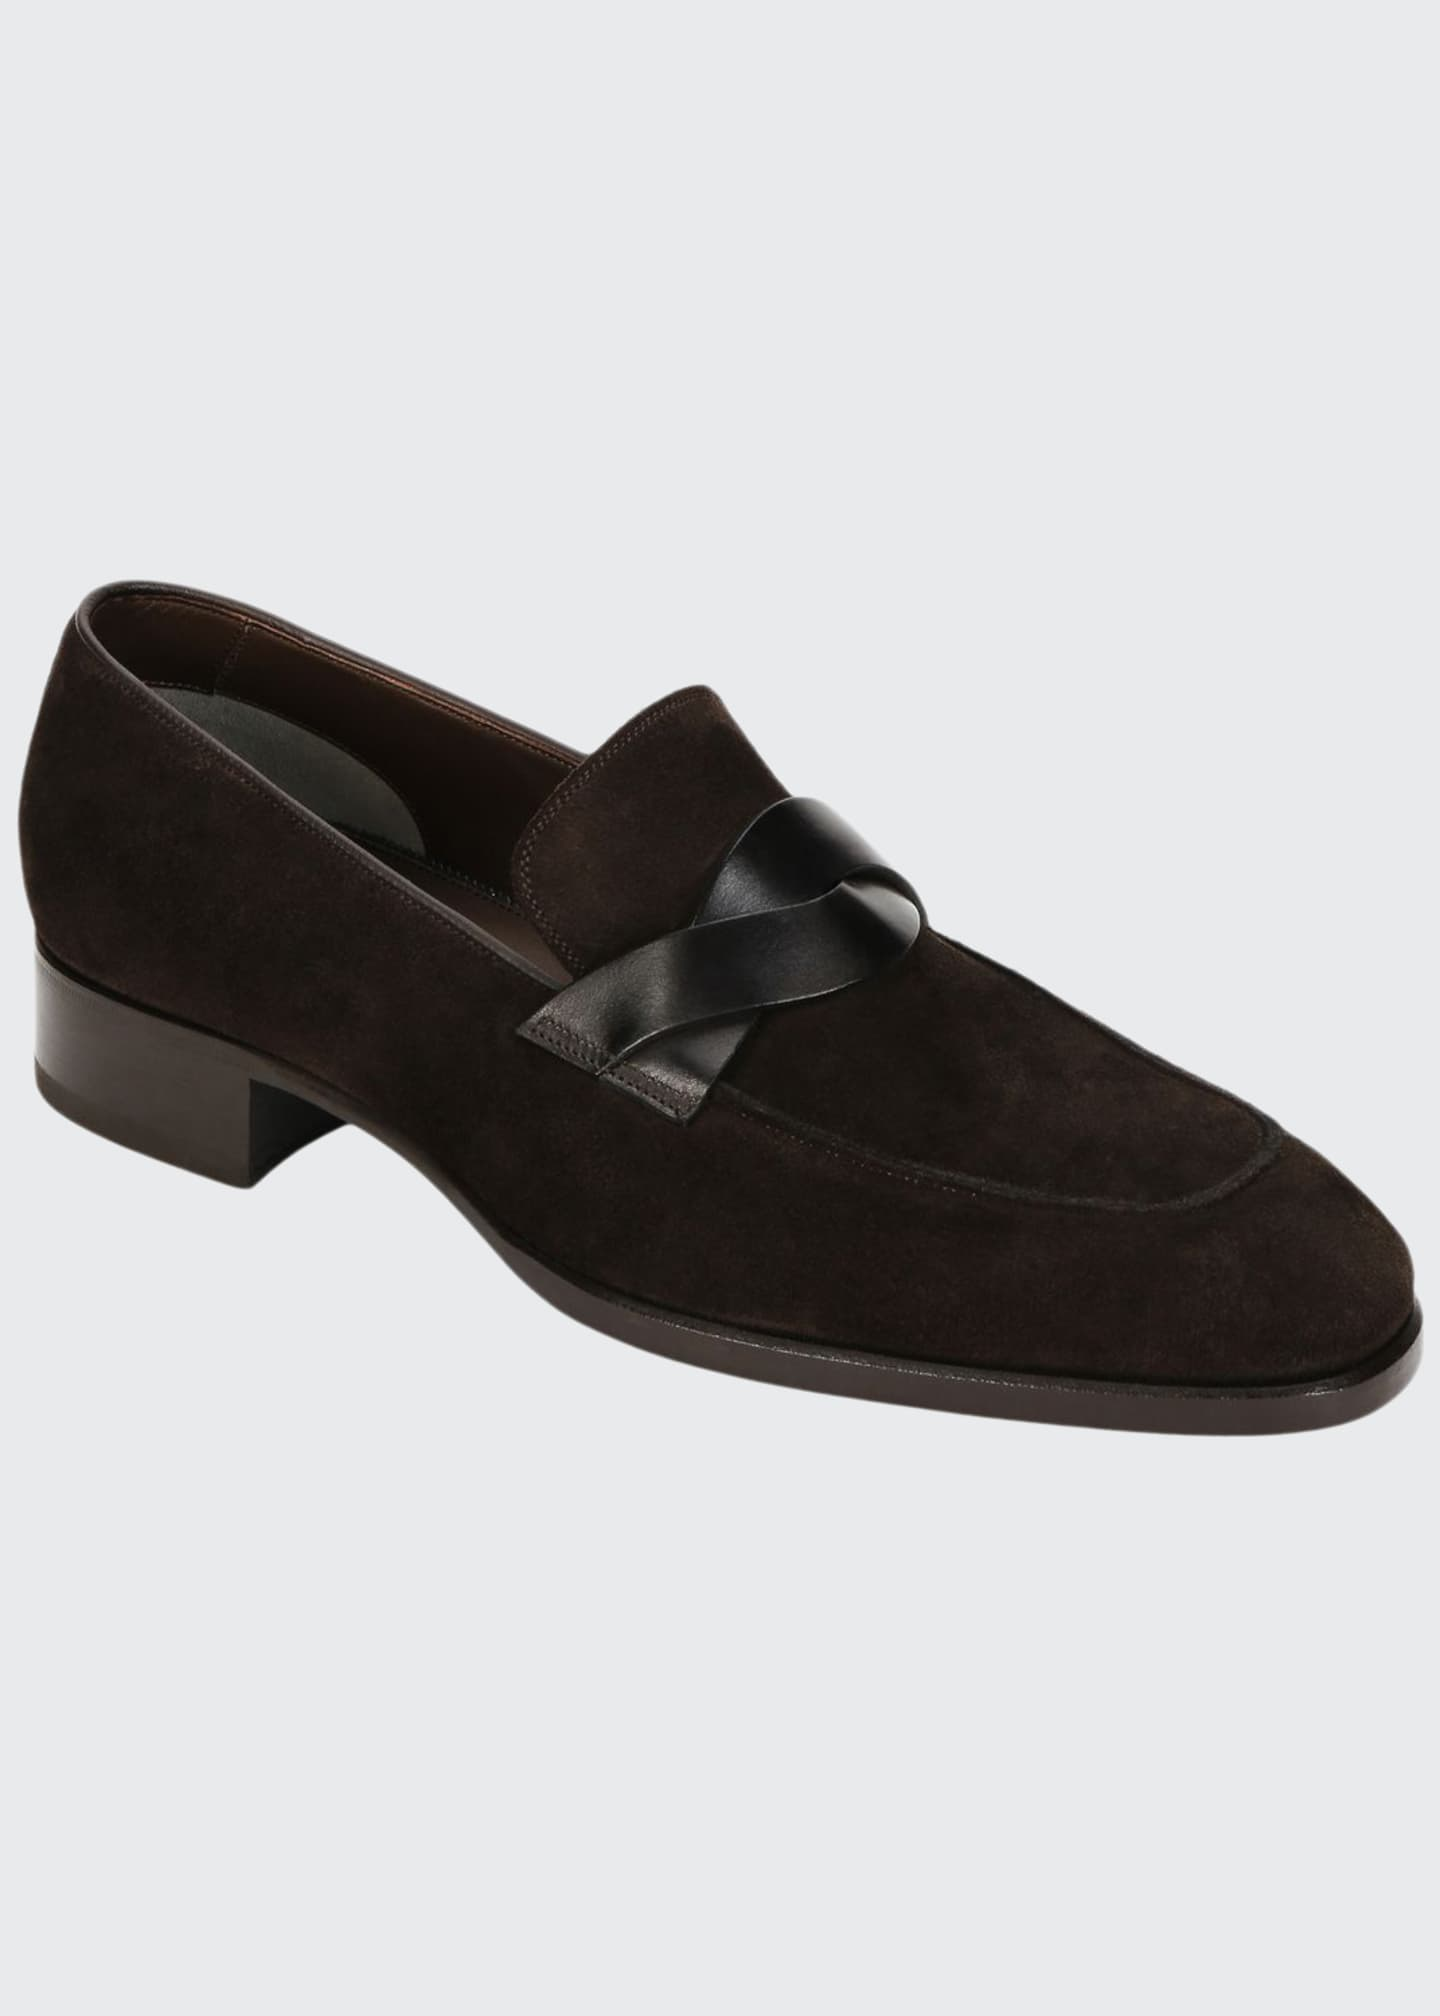 Image 1 of 3: Men's Twisted Strap Suede Loafers